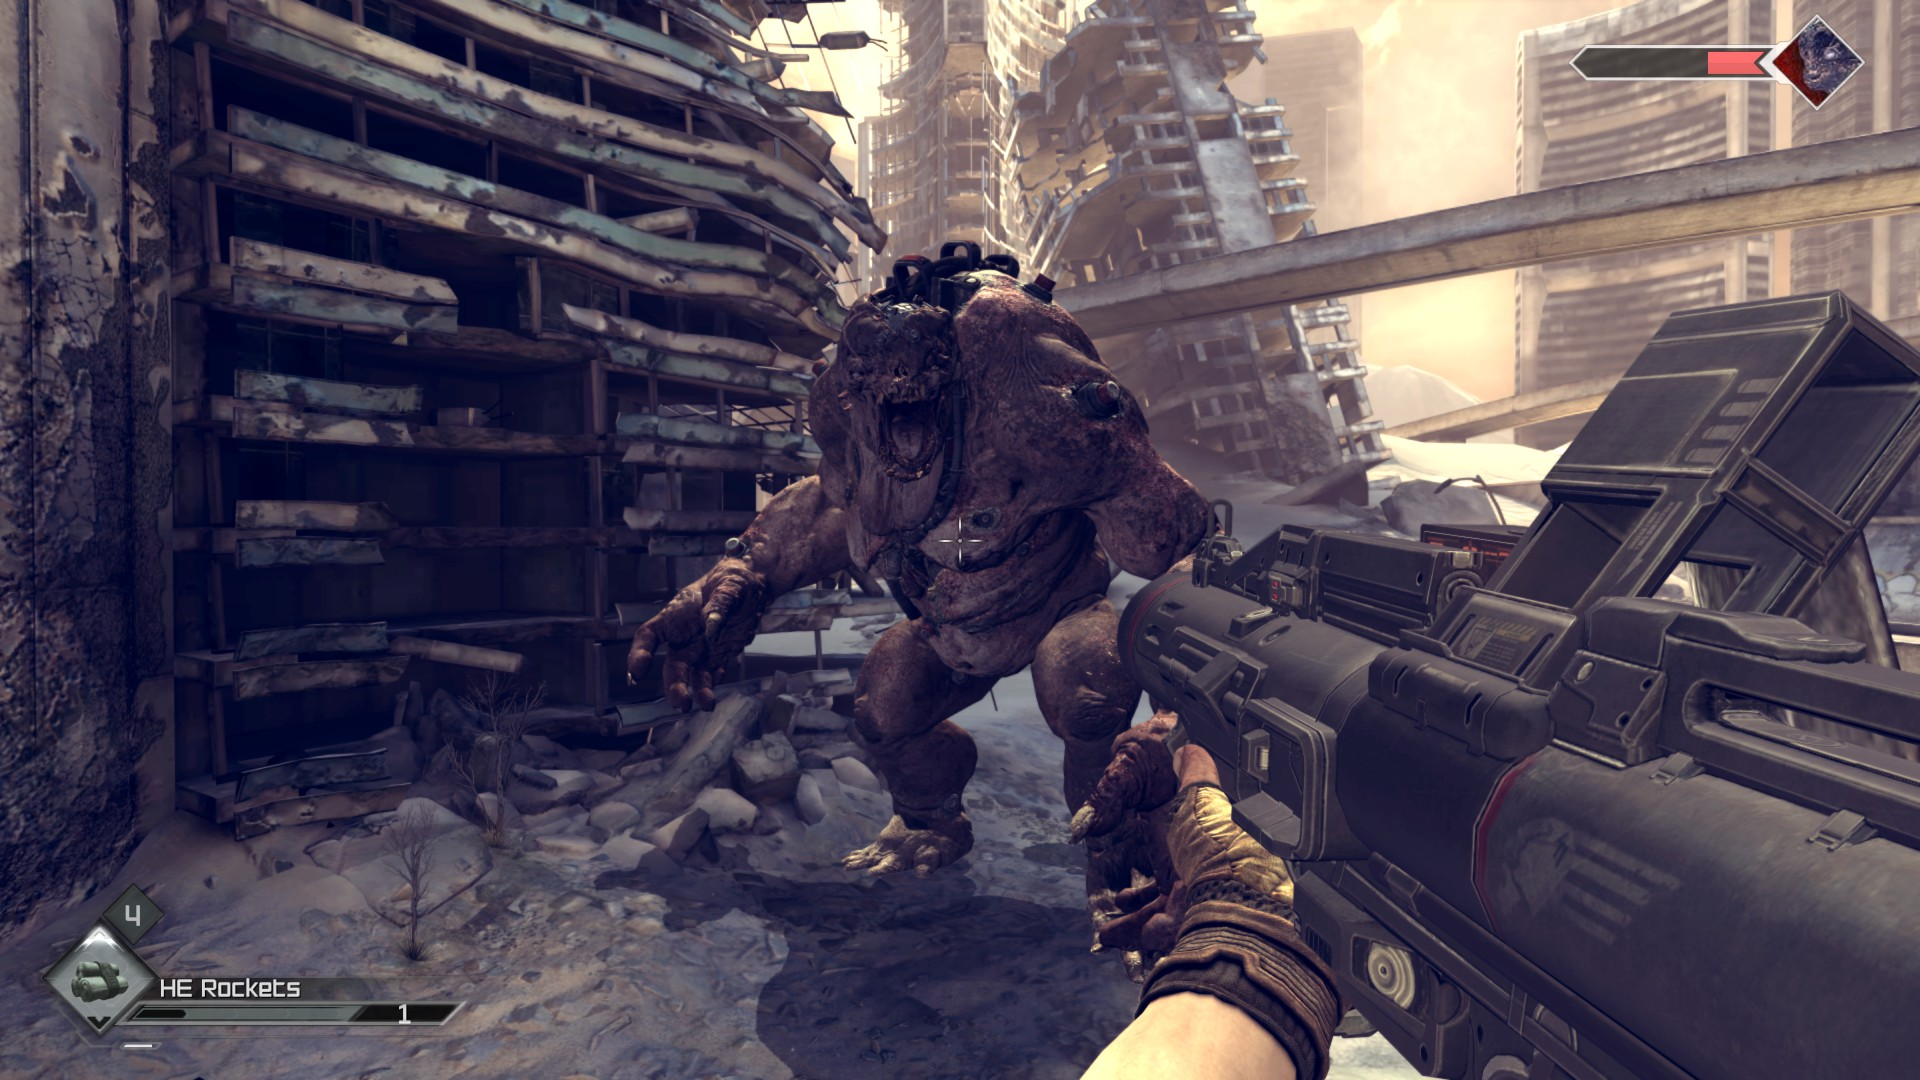 Rage 2 Free Game Codes 2019 [STEAM] - Get Product Code